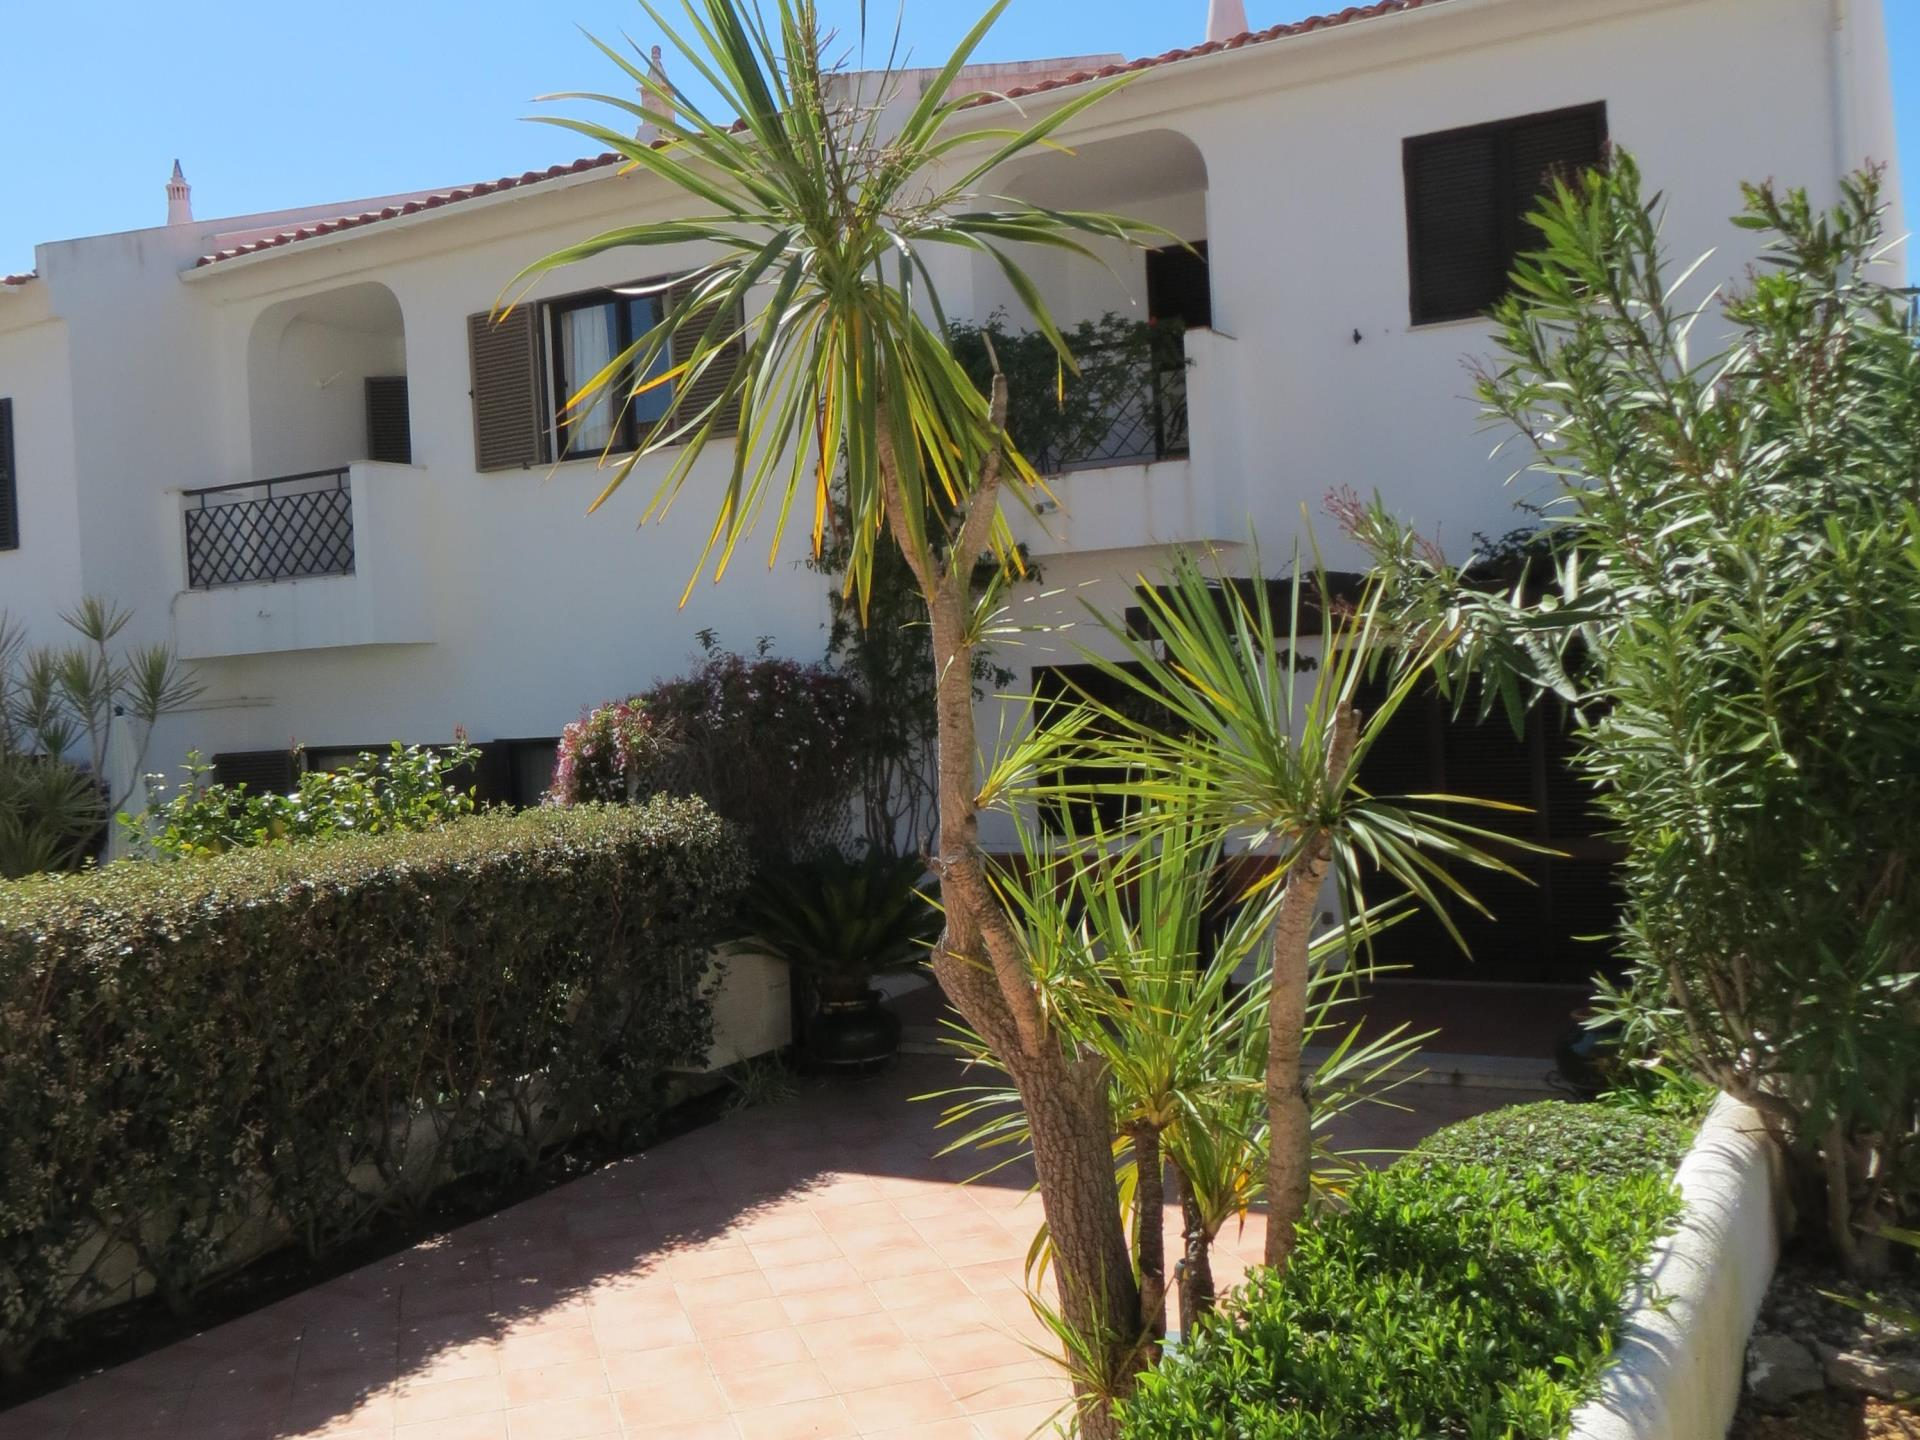 Tek Ailelik Ev için Satış at Semi-detached house, 2 bedrooms, for Sale Loule, Algarve Portekiz